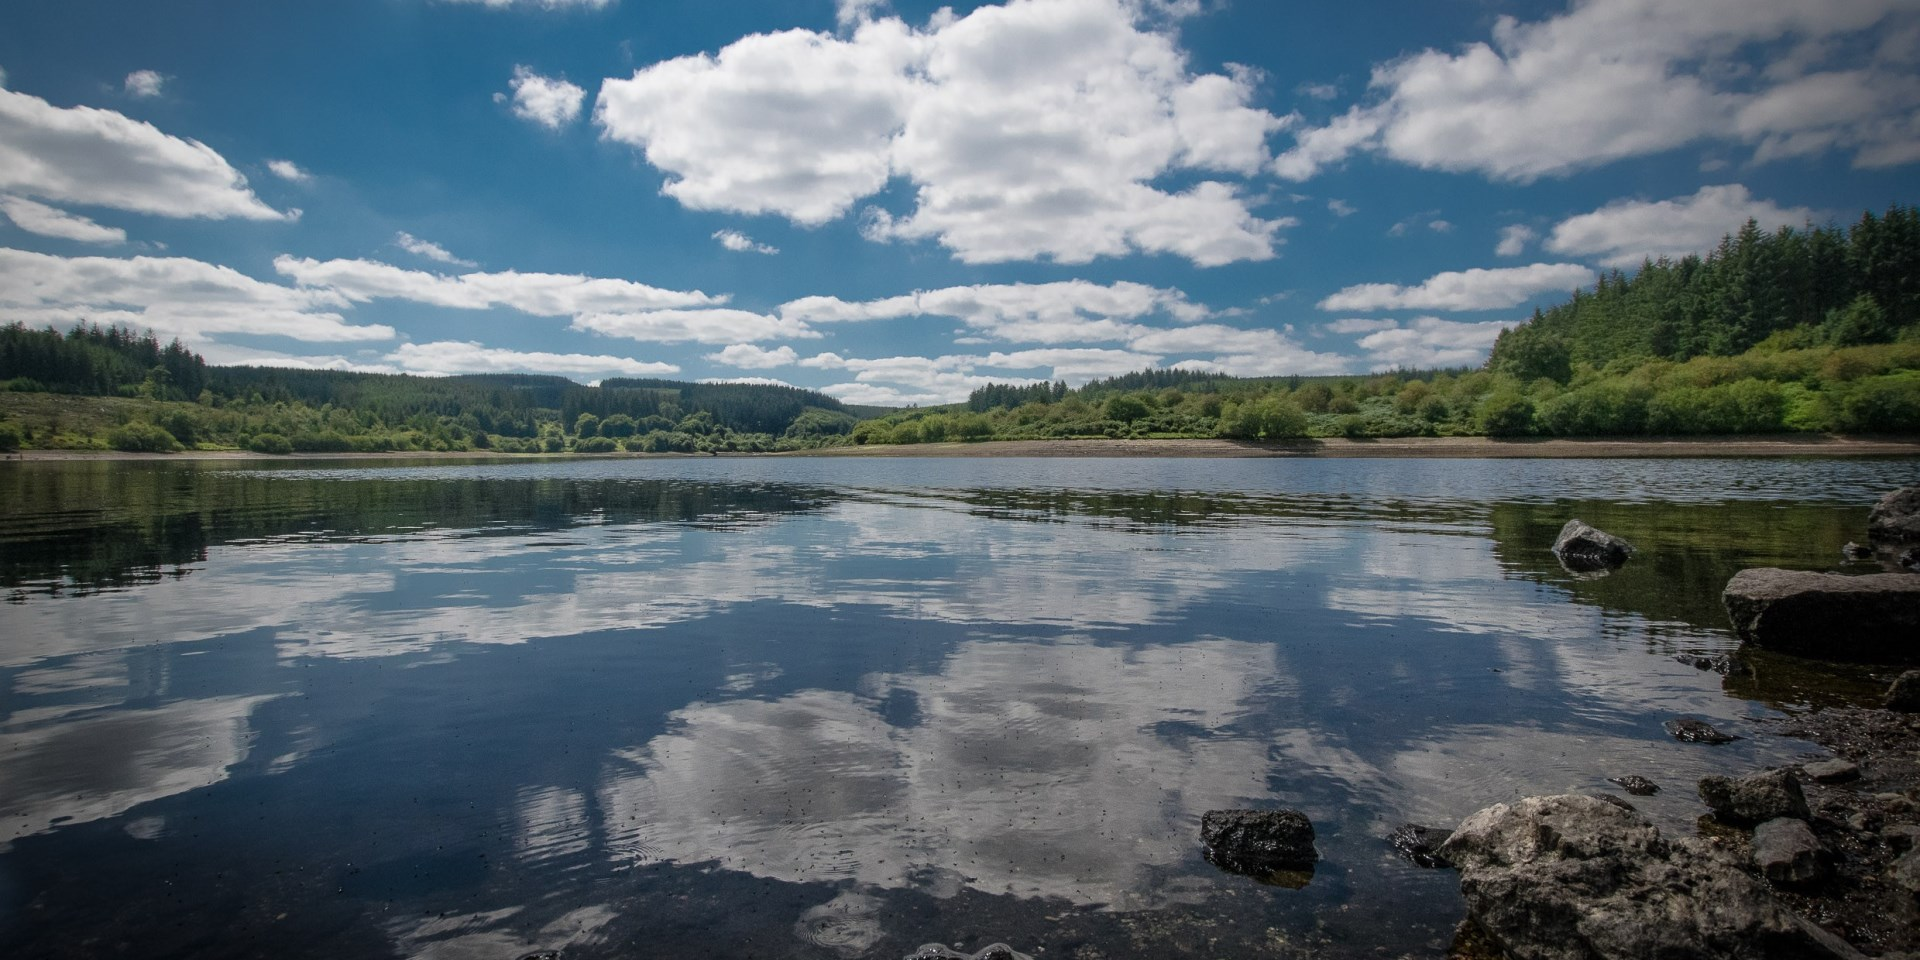 View of reservoir by Dave Harrison